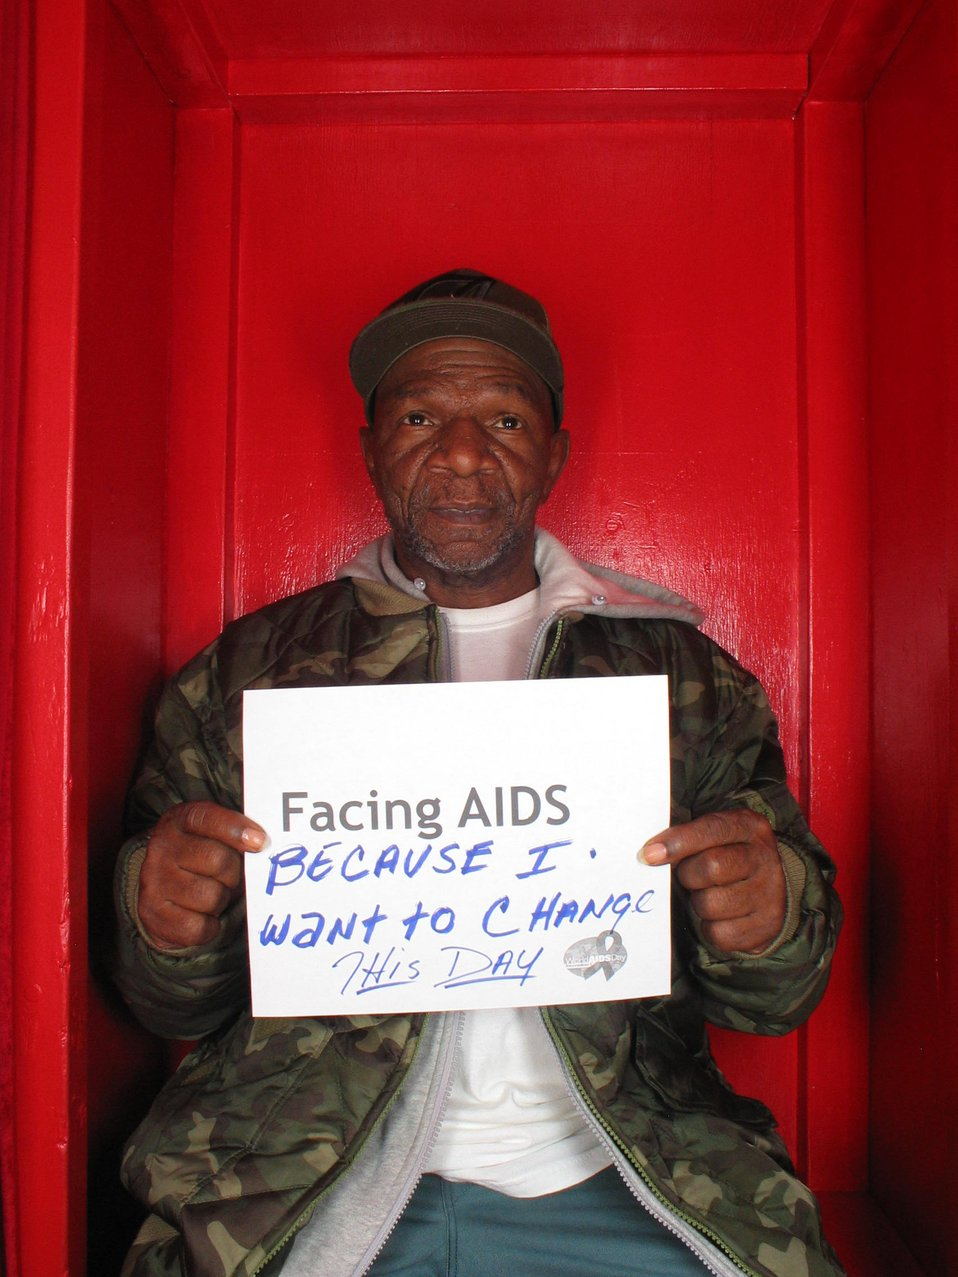 Facing AIDS because I want to change this day.